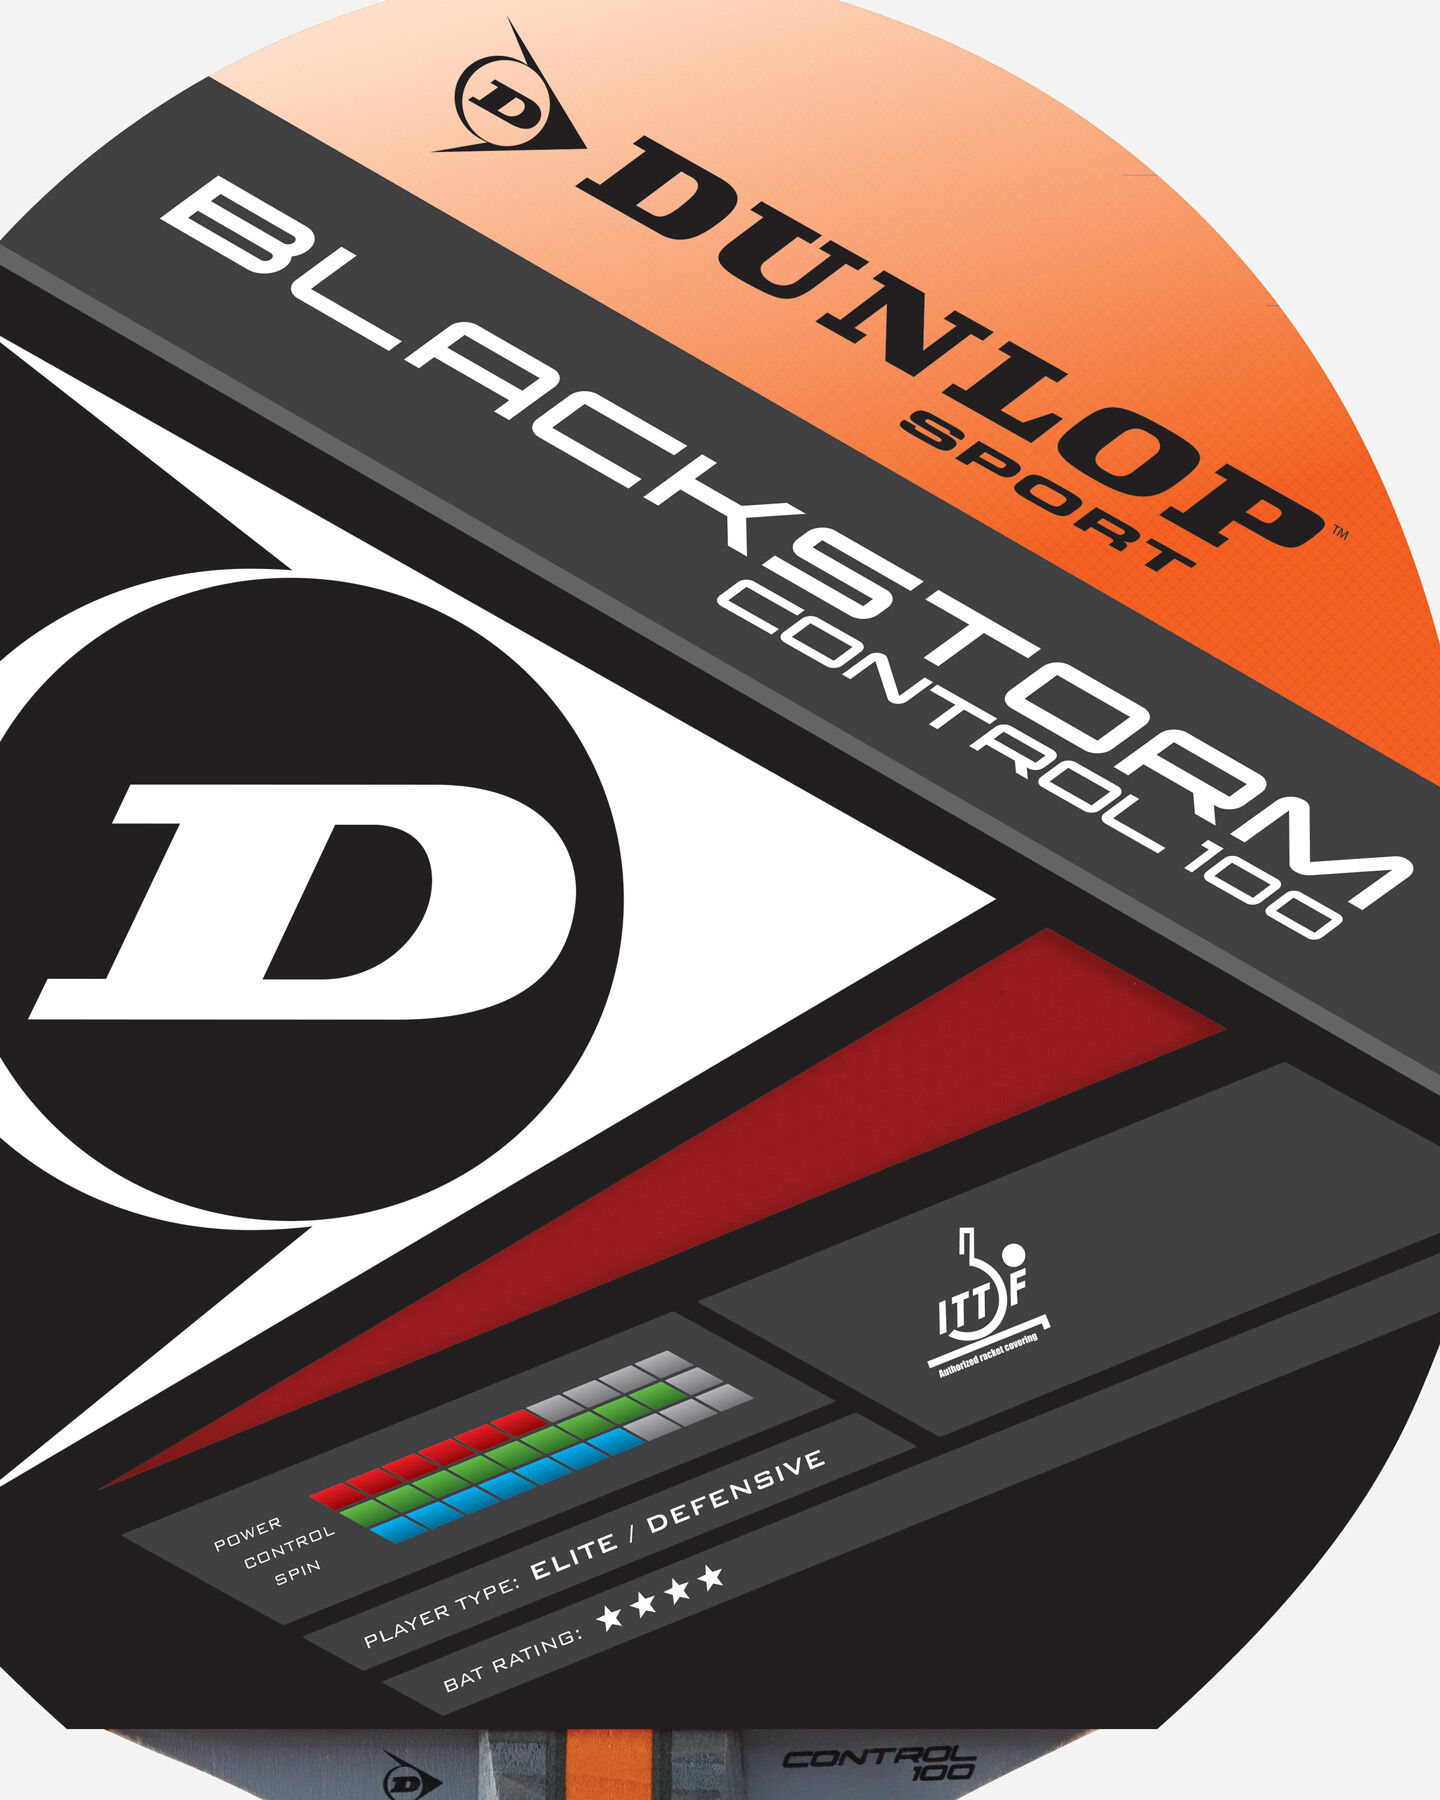 Accessorio ping pong DUNLOP BLACK STORM SPIN S4010049|1|UNI scatto 1